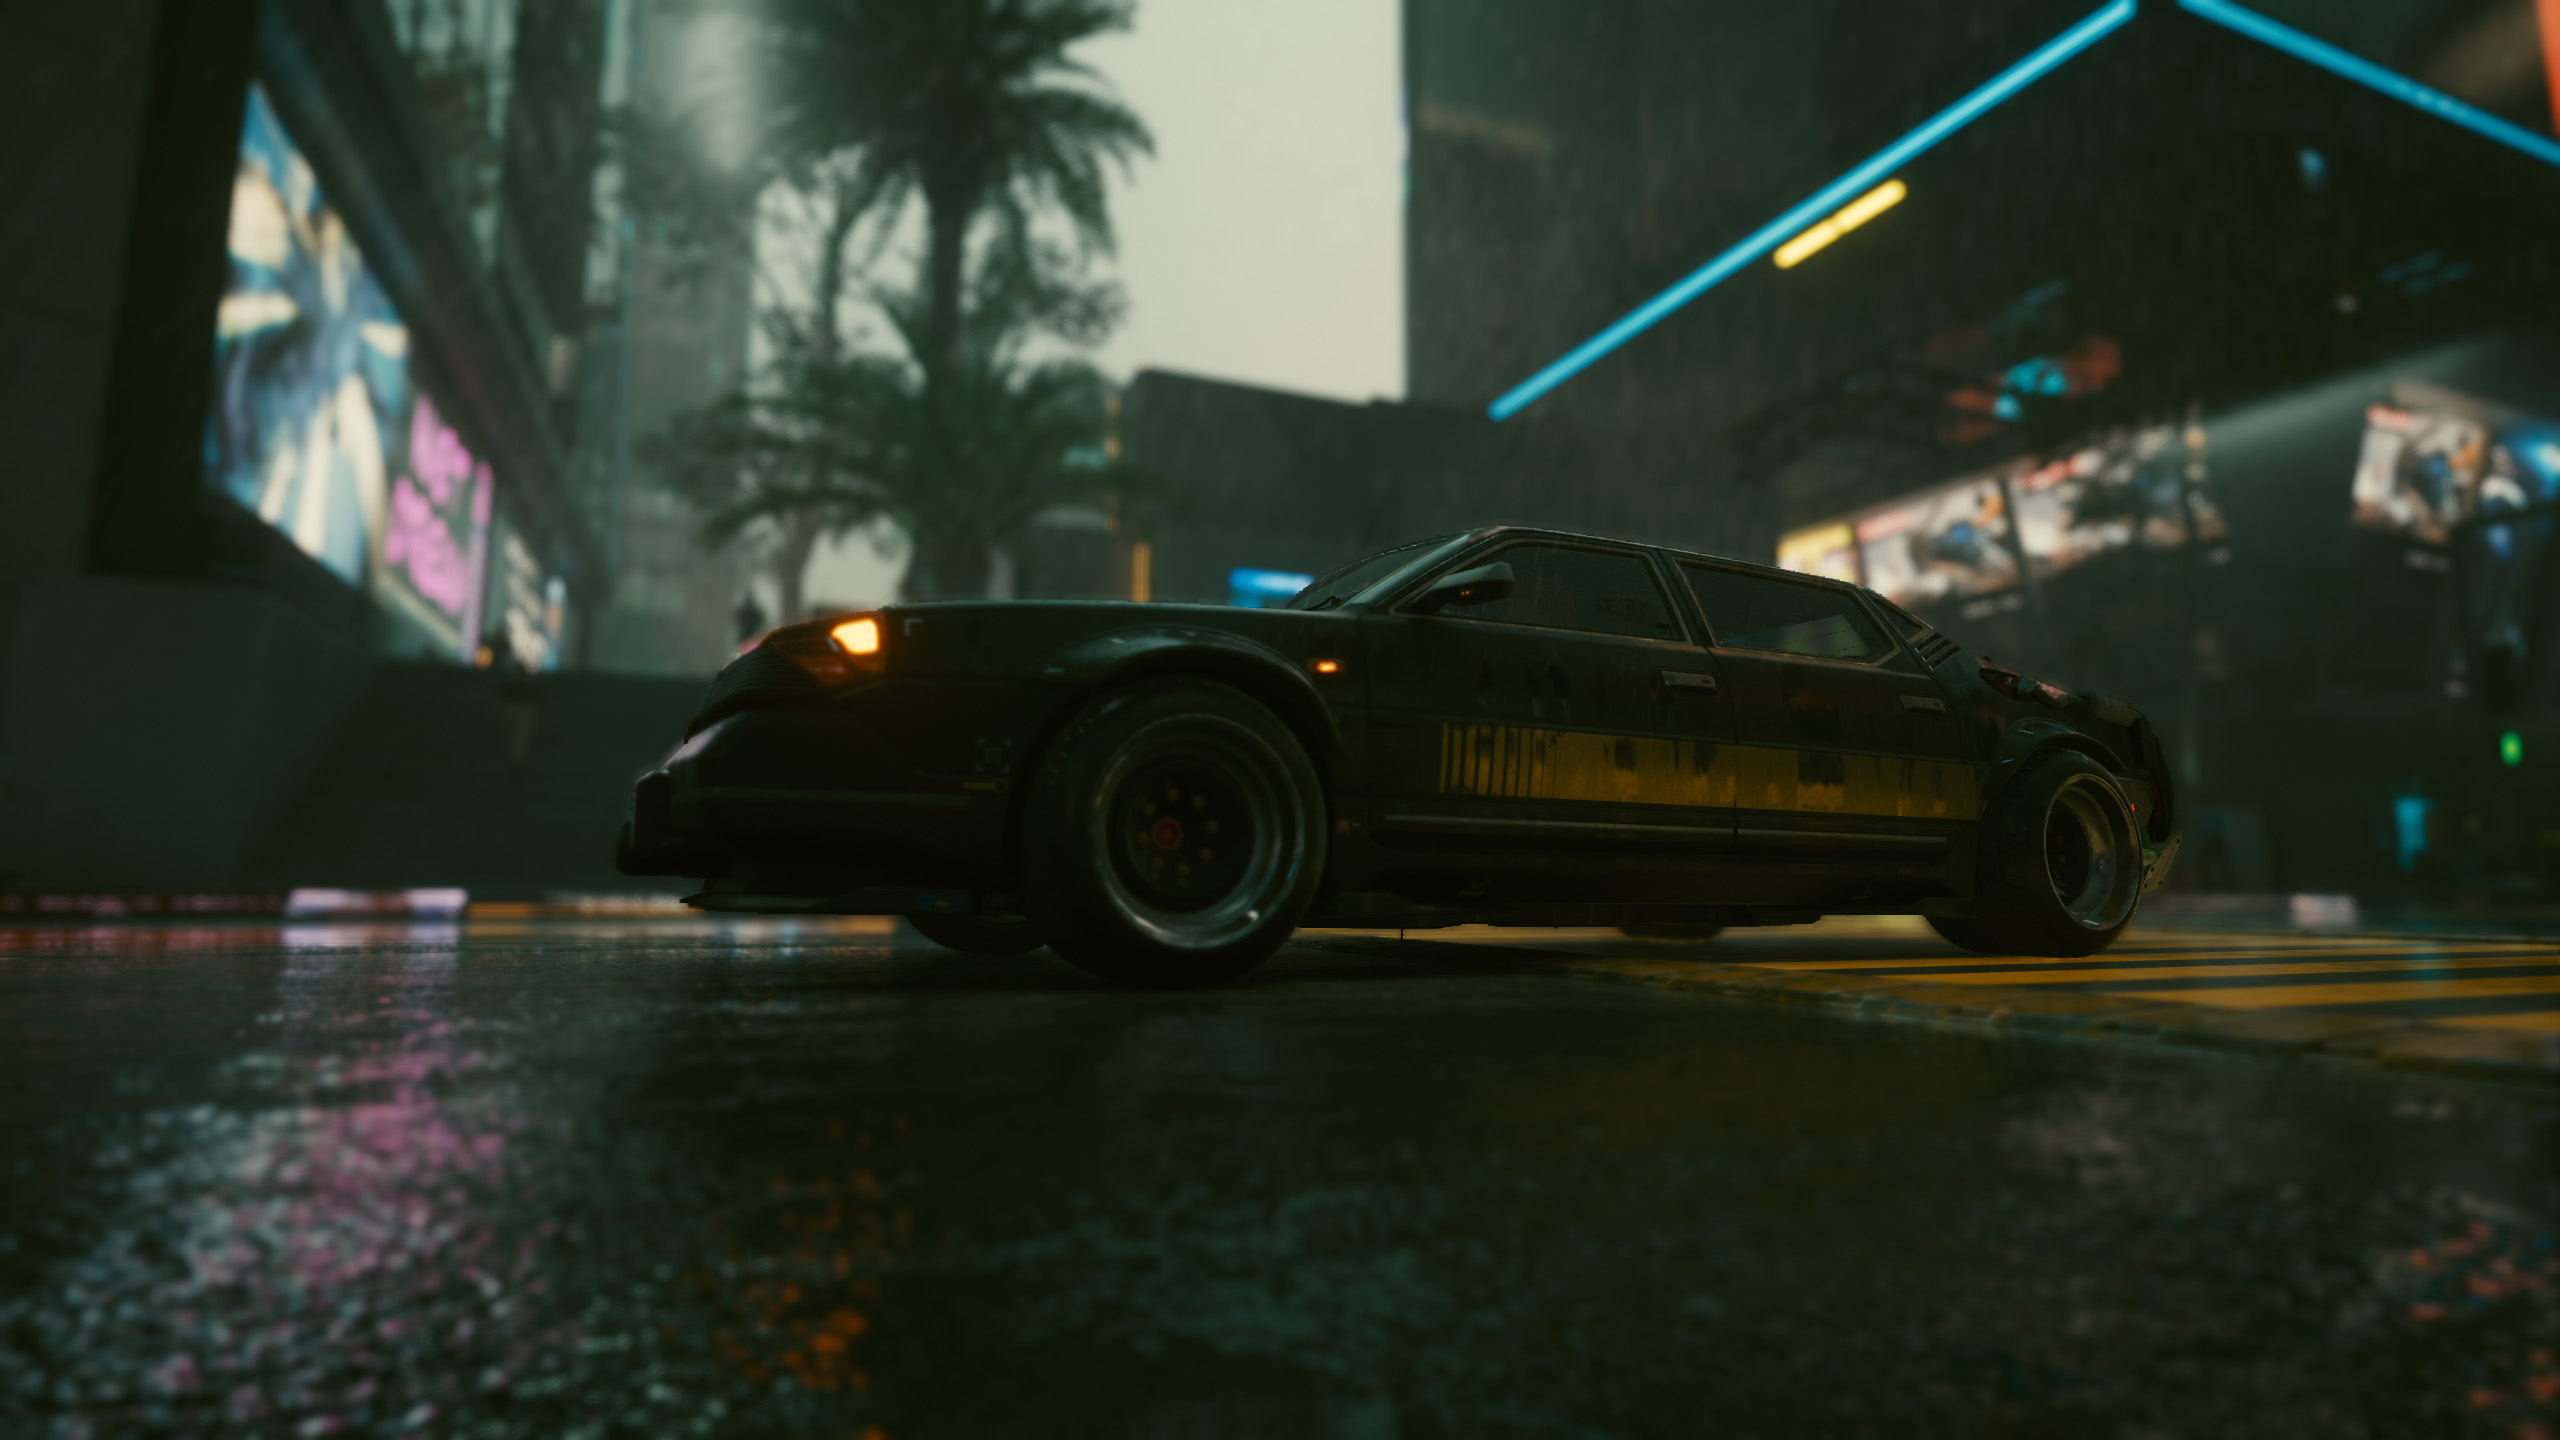 Image of article 'Can you customize vehicles in Cyberpunk 2077'